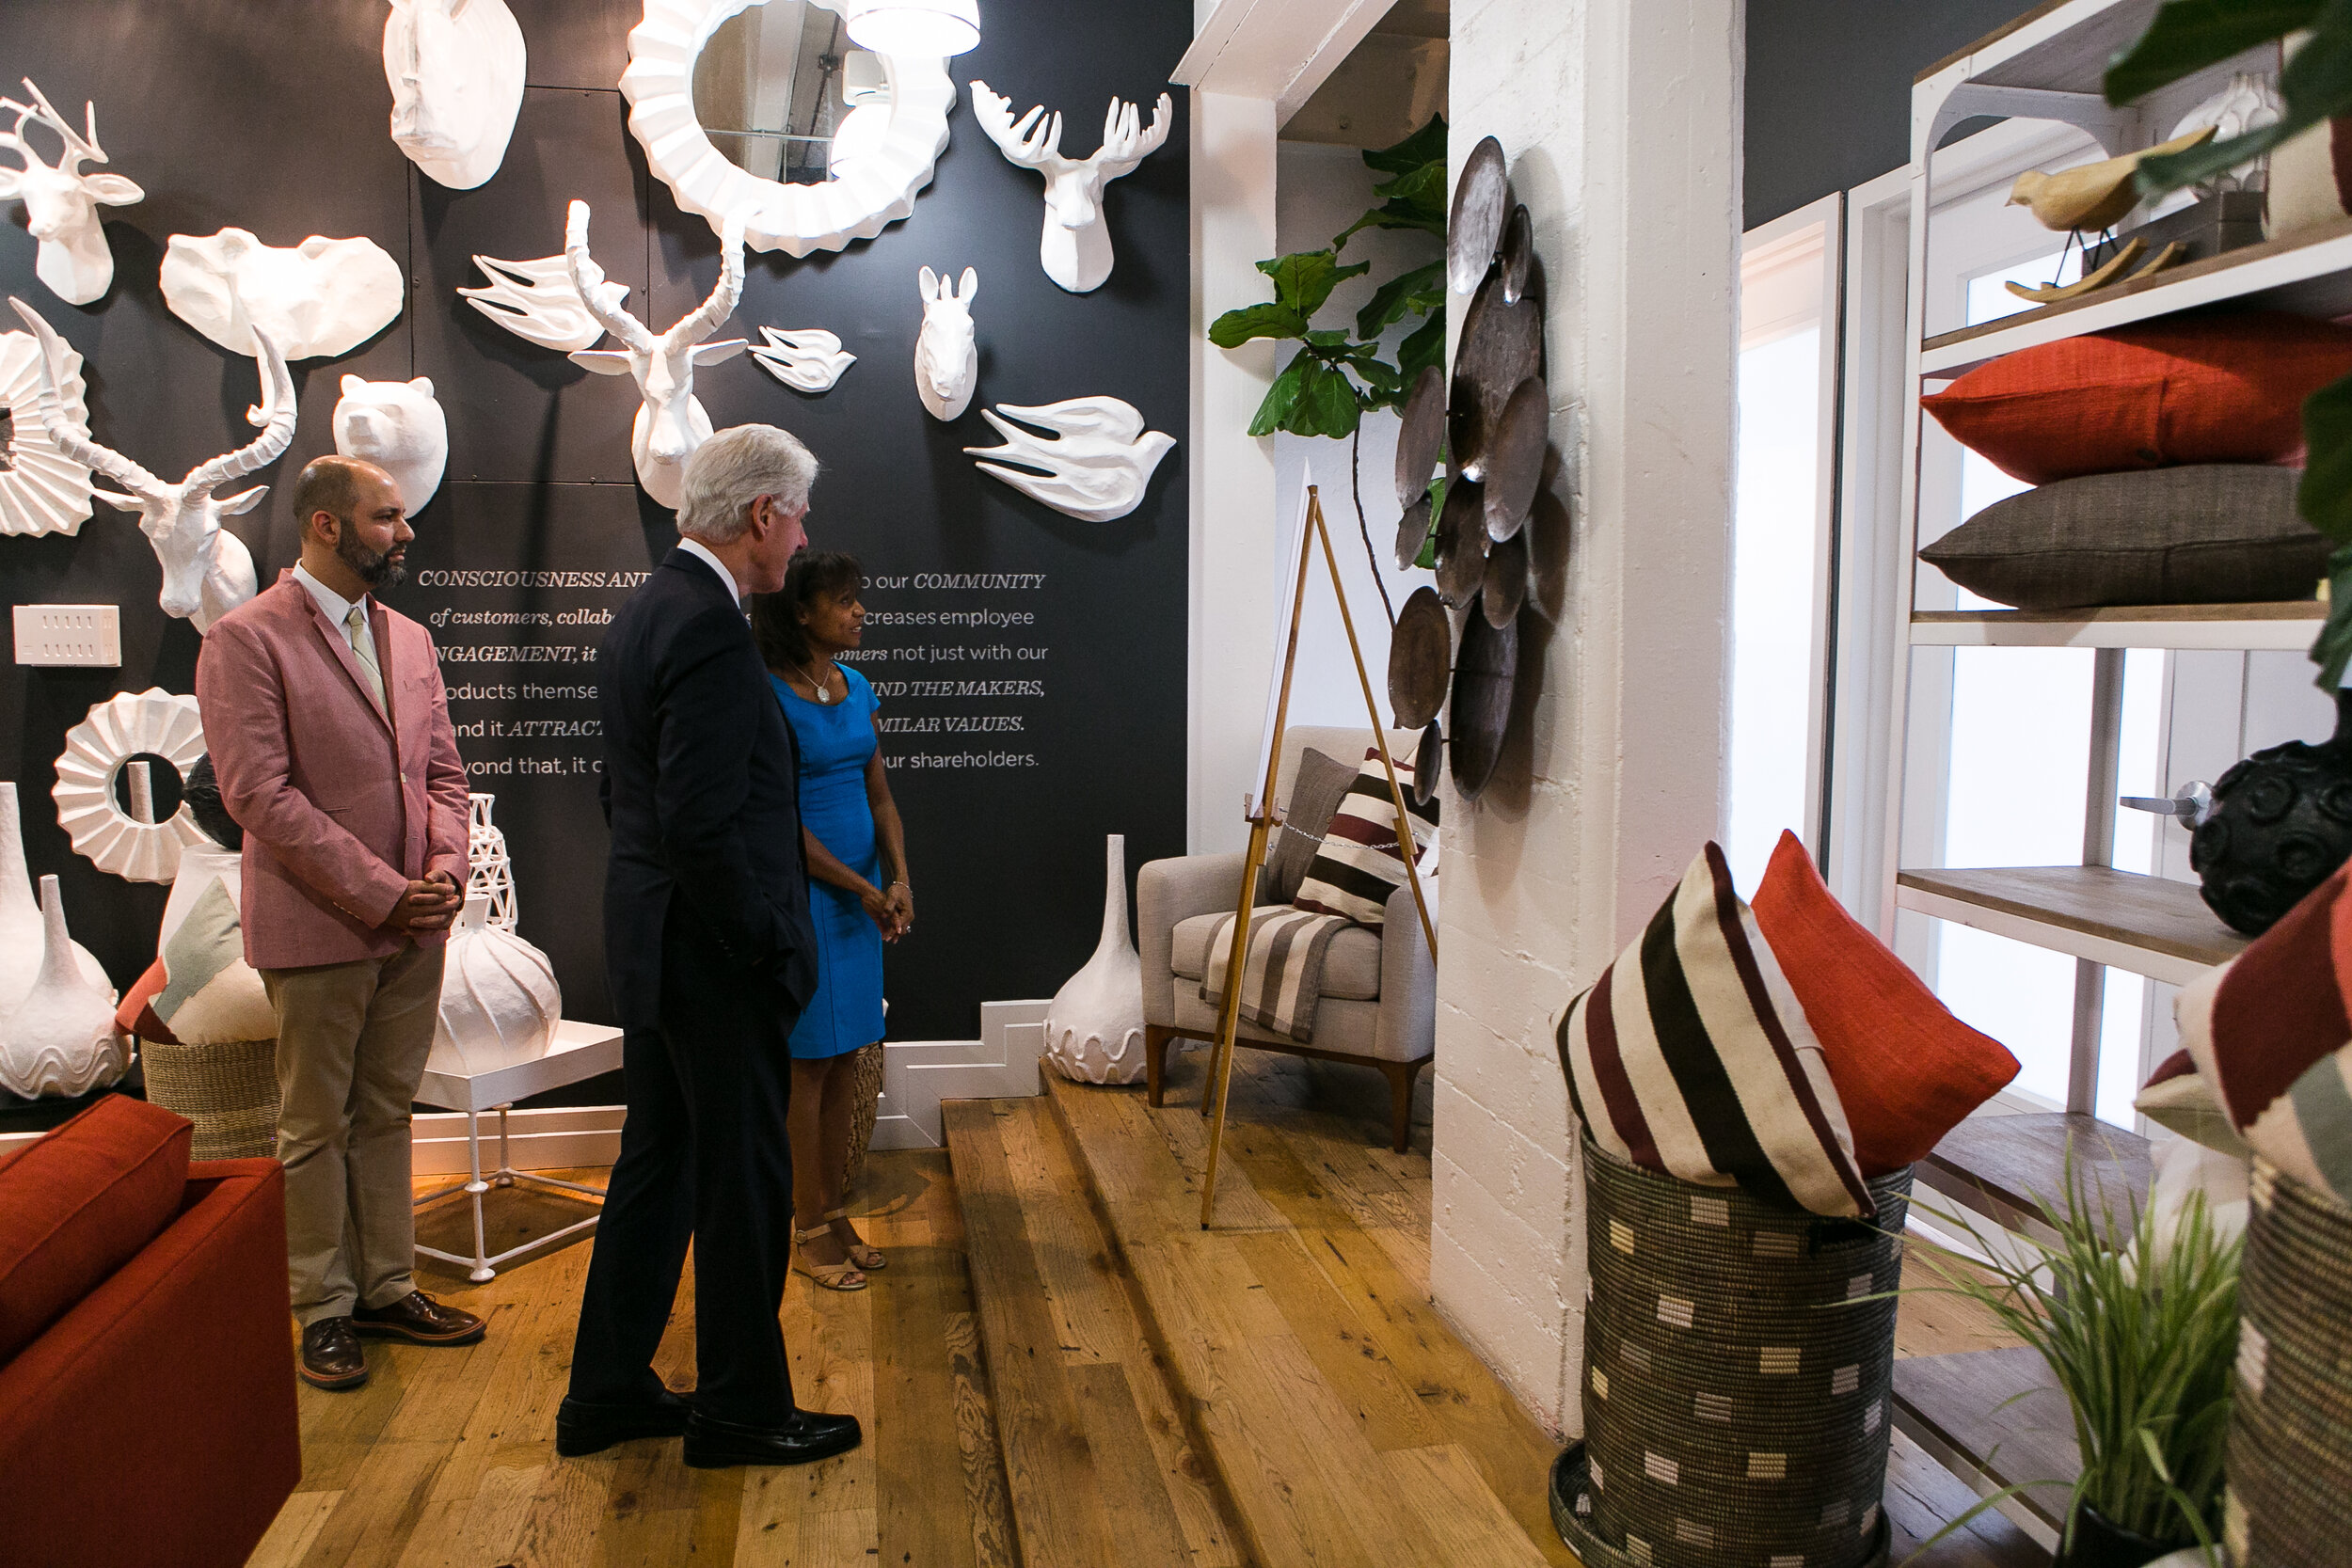 Former US President Bill Clinton views the home decor made by Caribbean Craft for West Elm